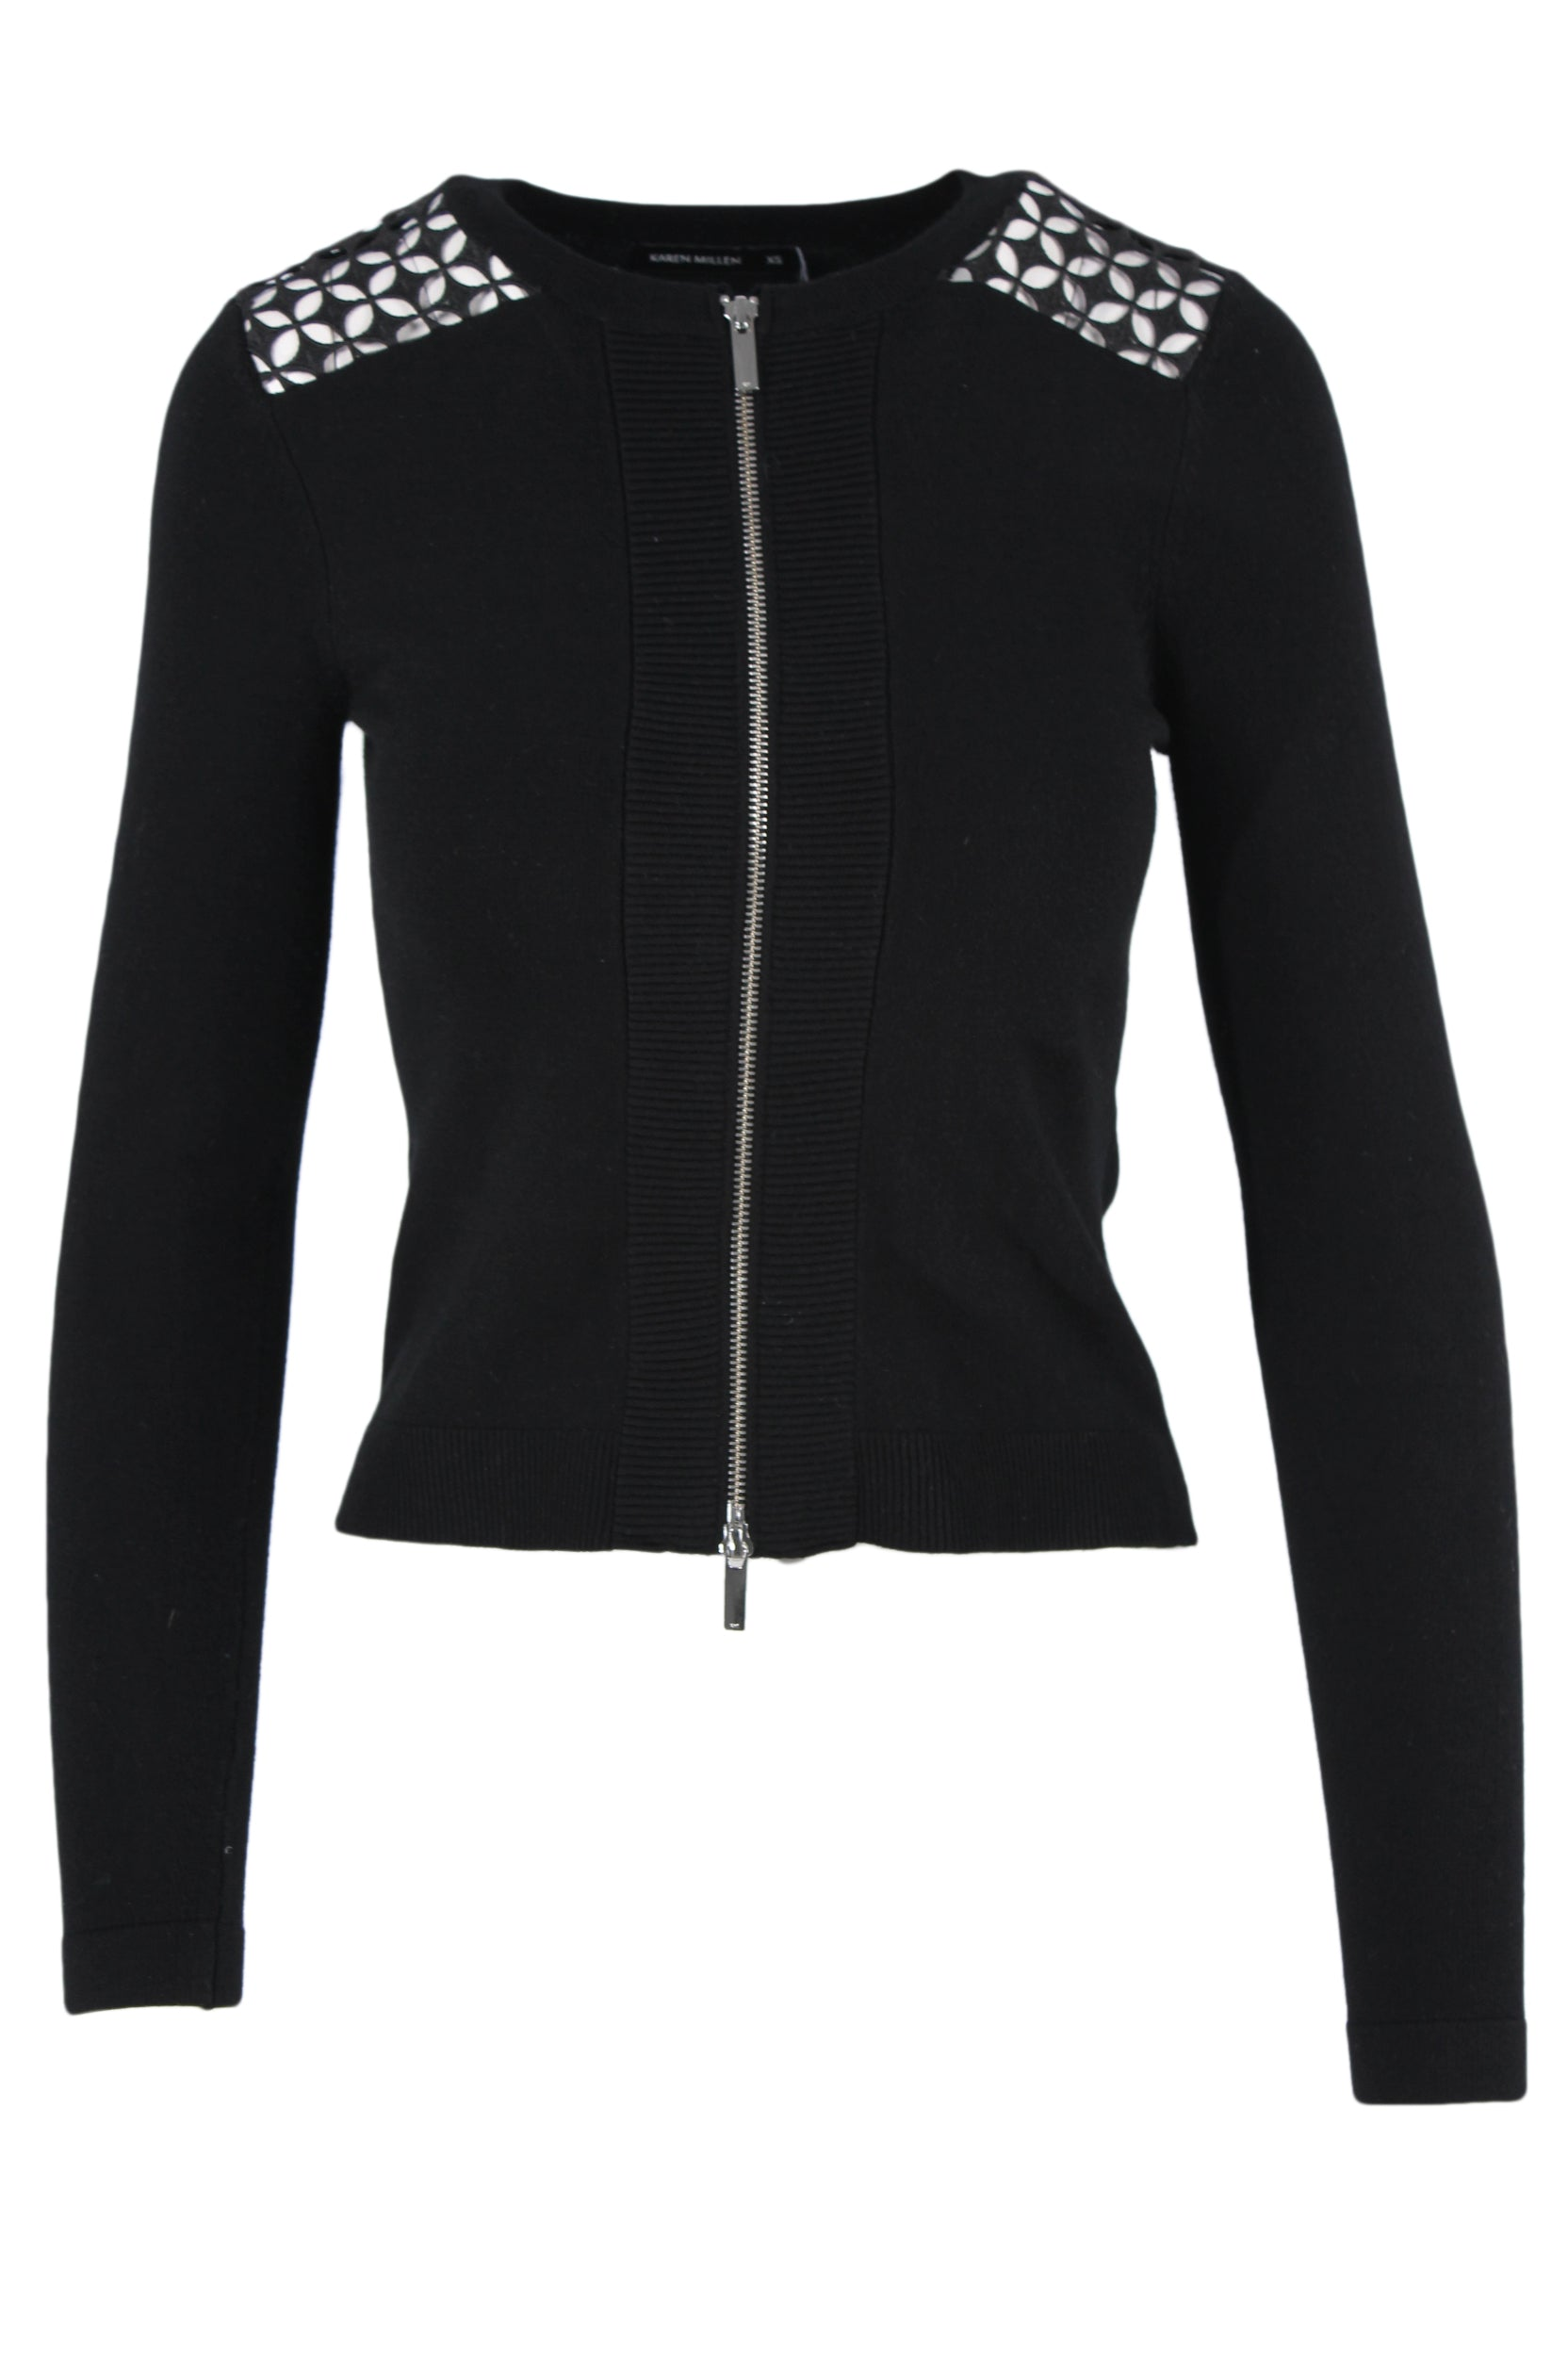 karen millen black knit jacket. features black exterior, silver toned zipper closure, round neckline and tonal cutout embroidered details at shoulders. has high low ribbed hem.